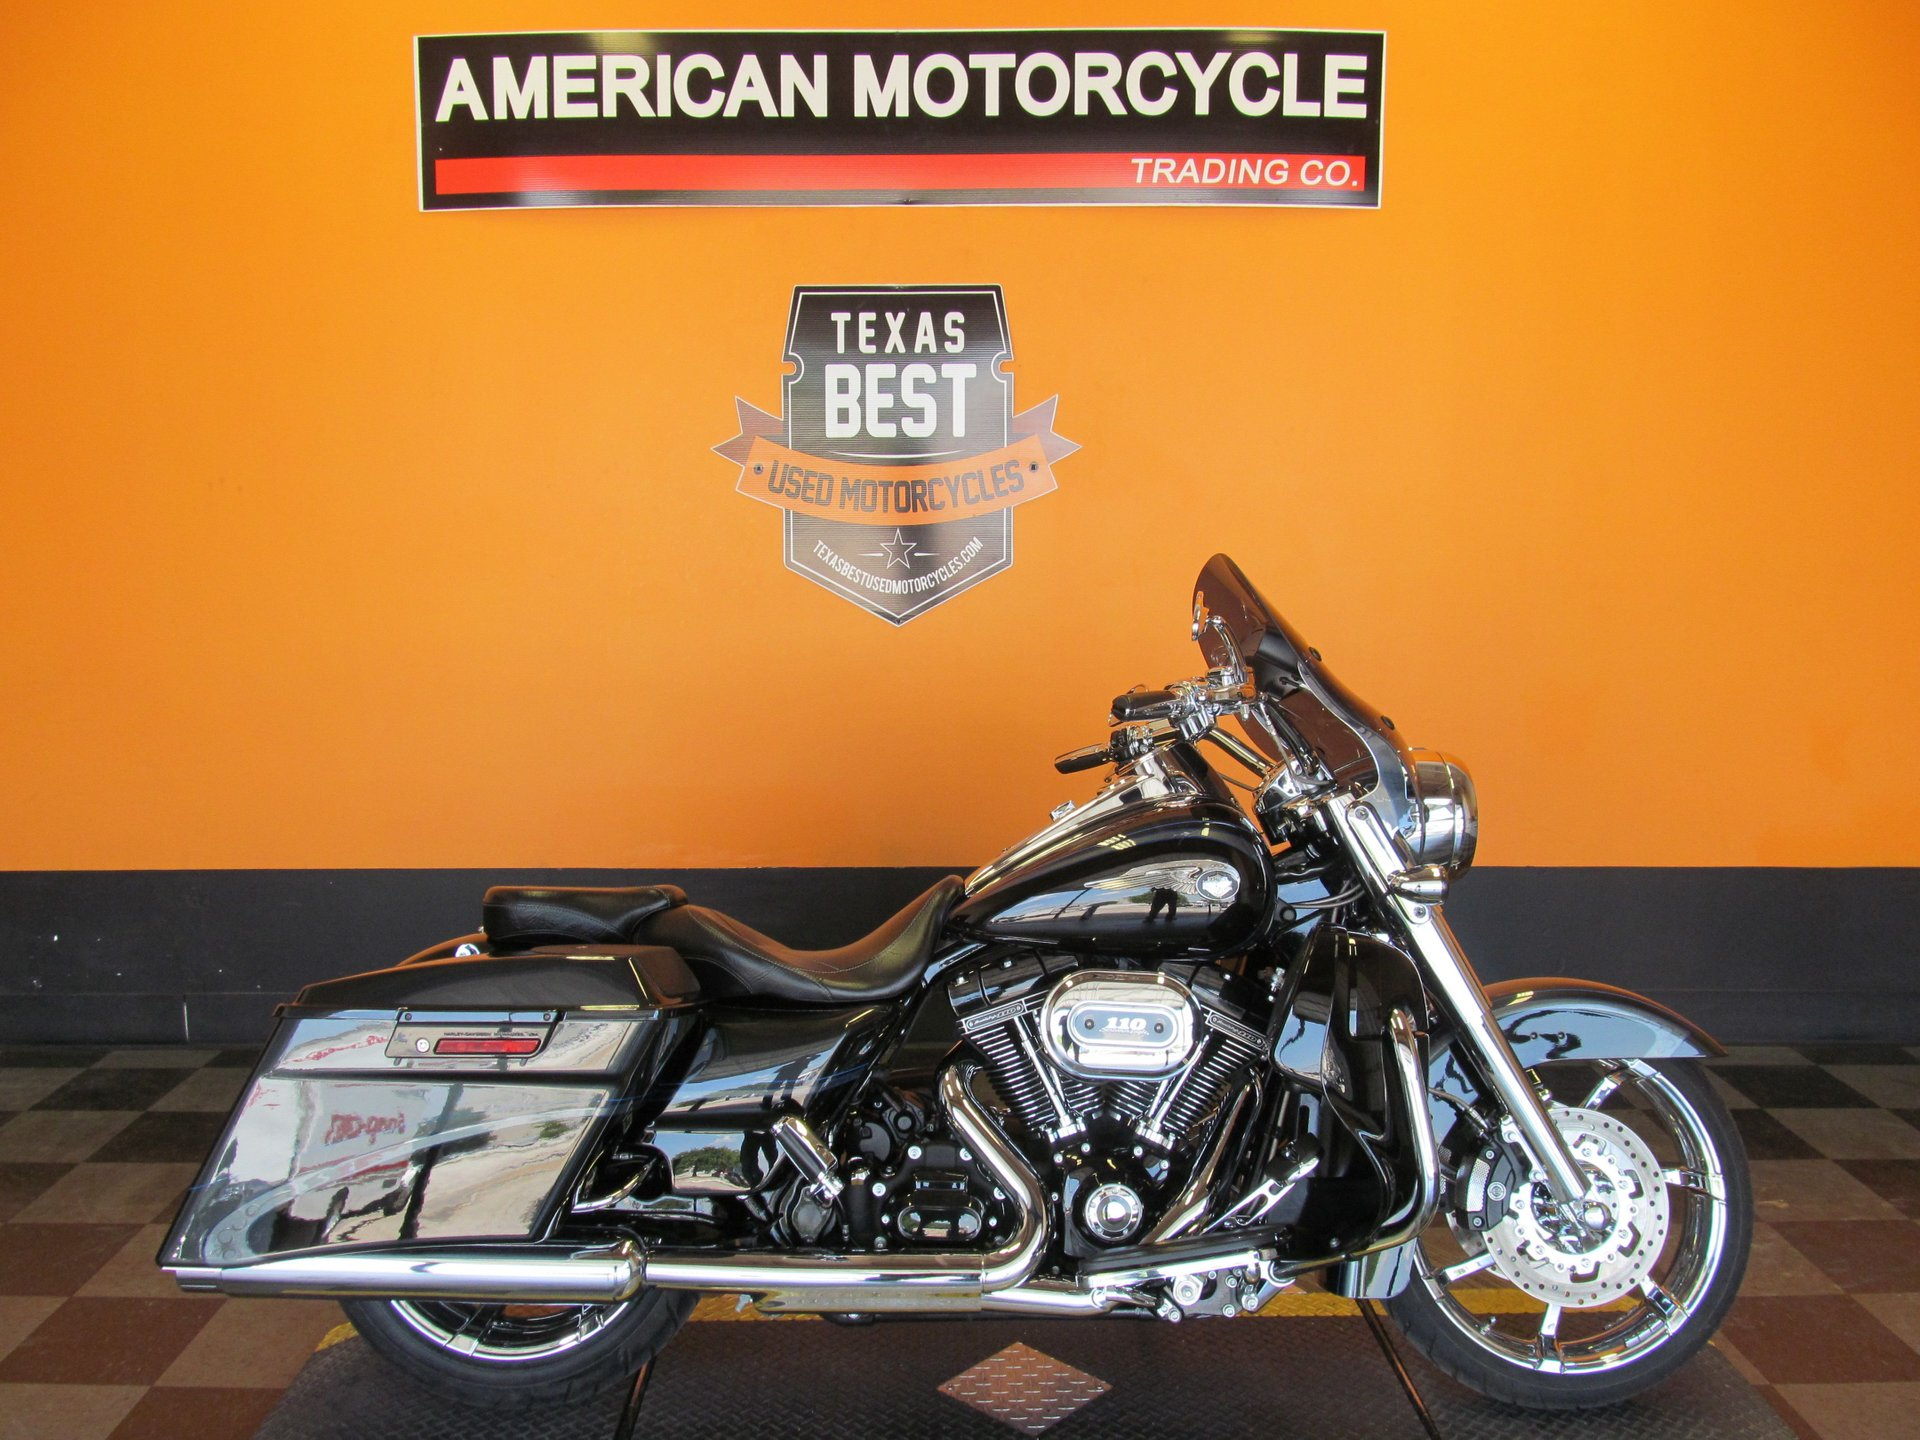 2013 harley davidson cvo road king 110th anniversary flhrse5